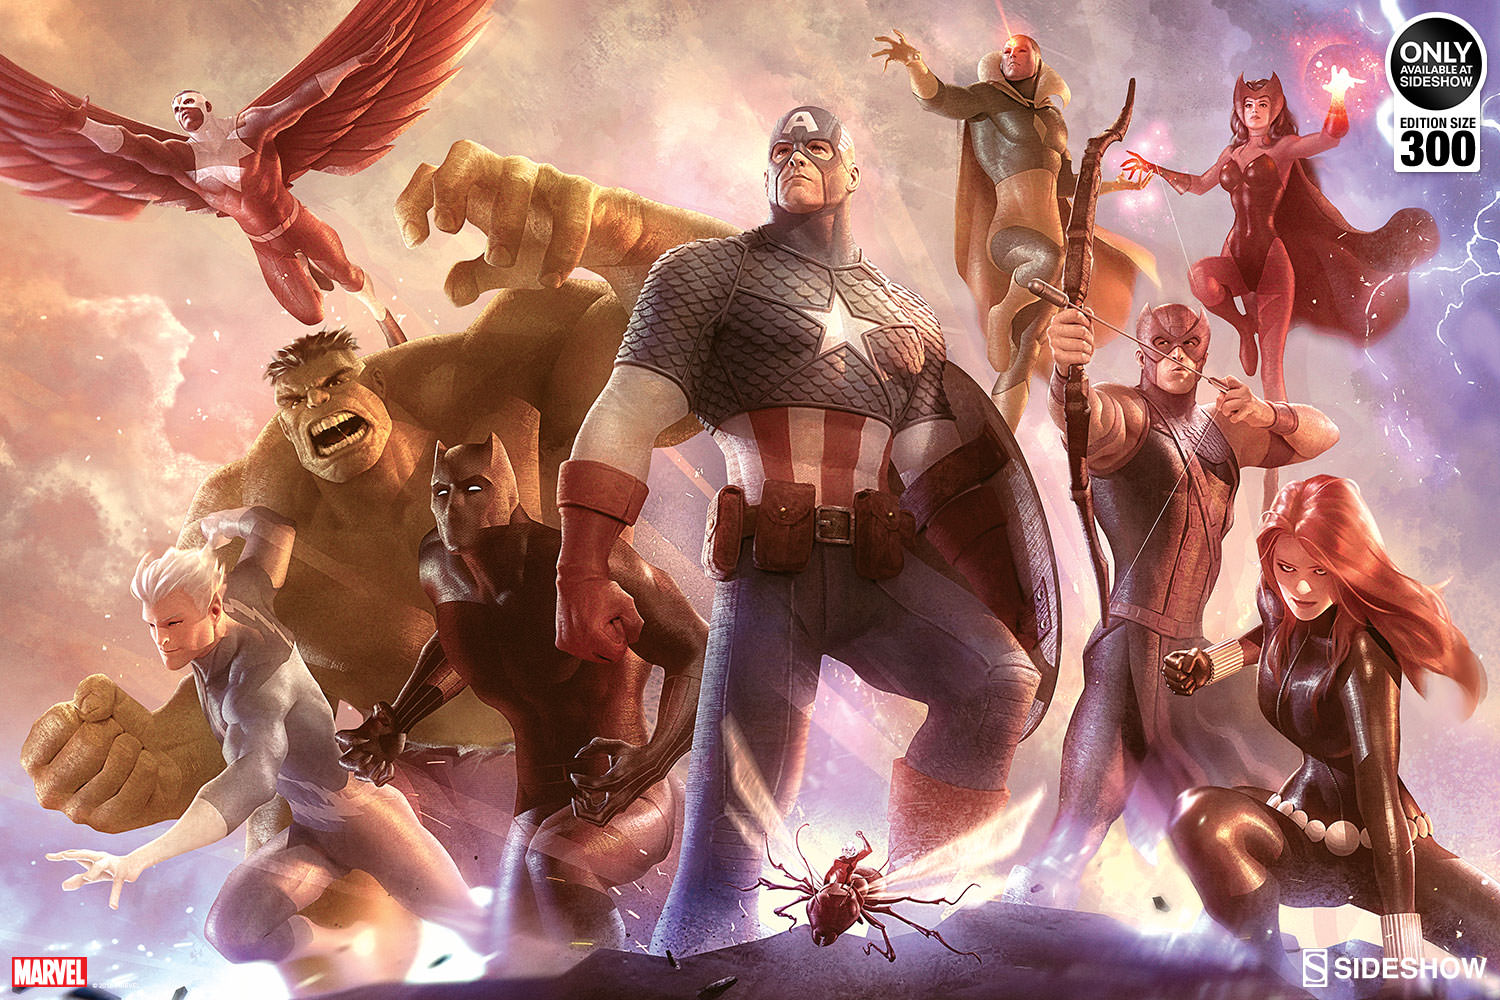 Avengers Assemble Wallpaper Hd Marvel Avengers Team Cap Art Print By Sideshow